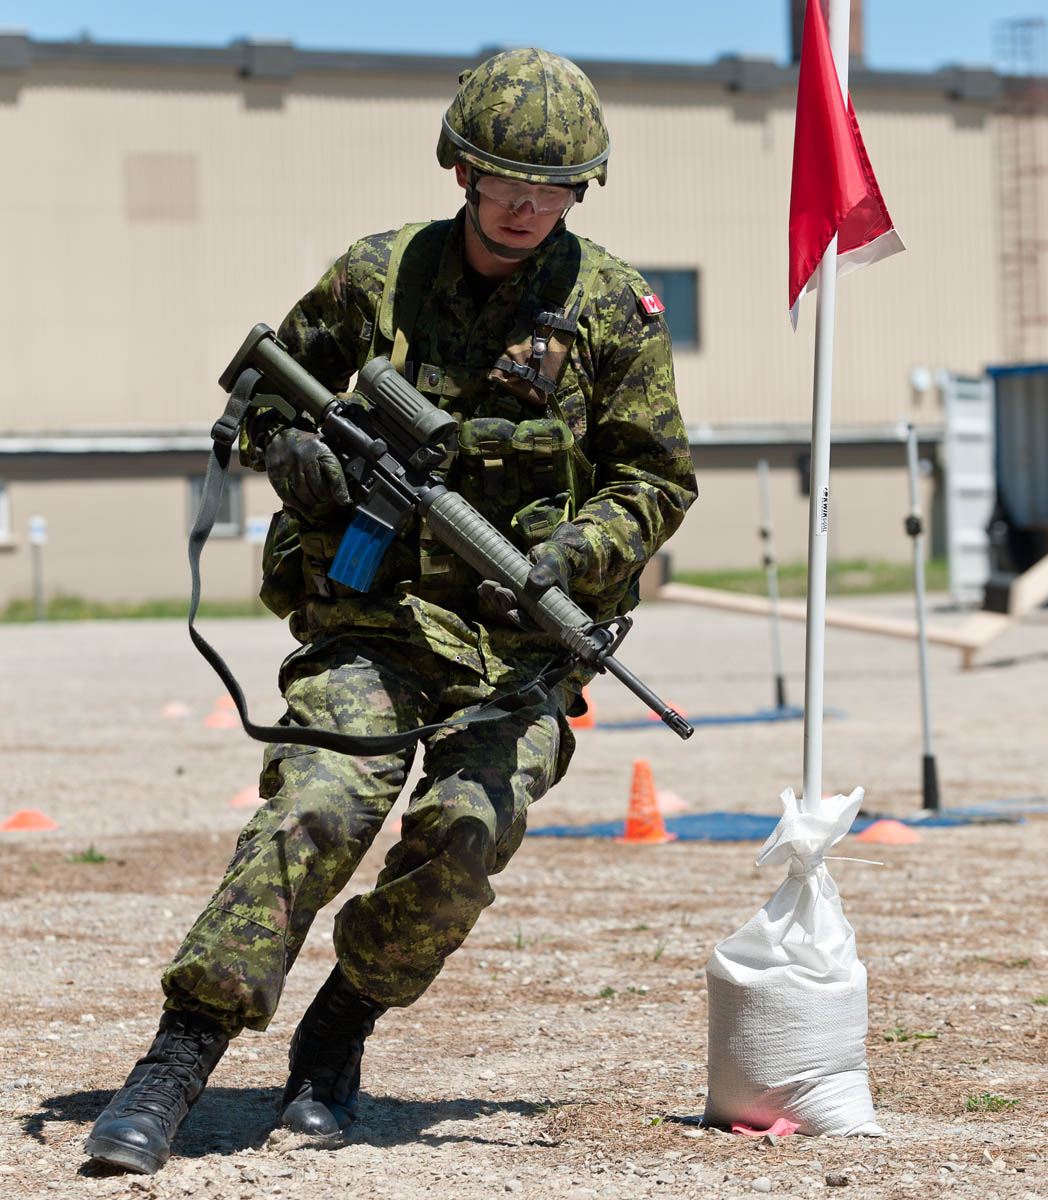 A Canadian Armed Forces soldier completes the CAN LEAP course